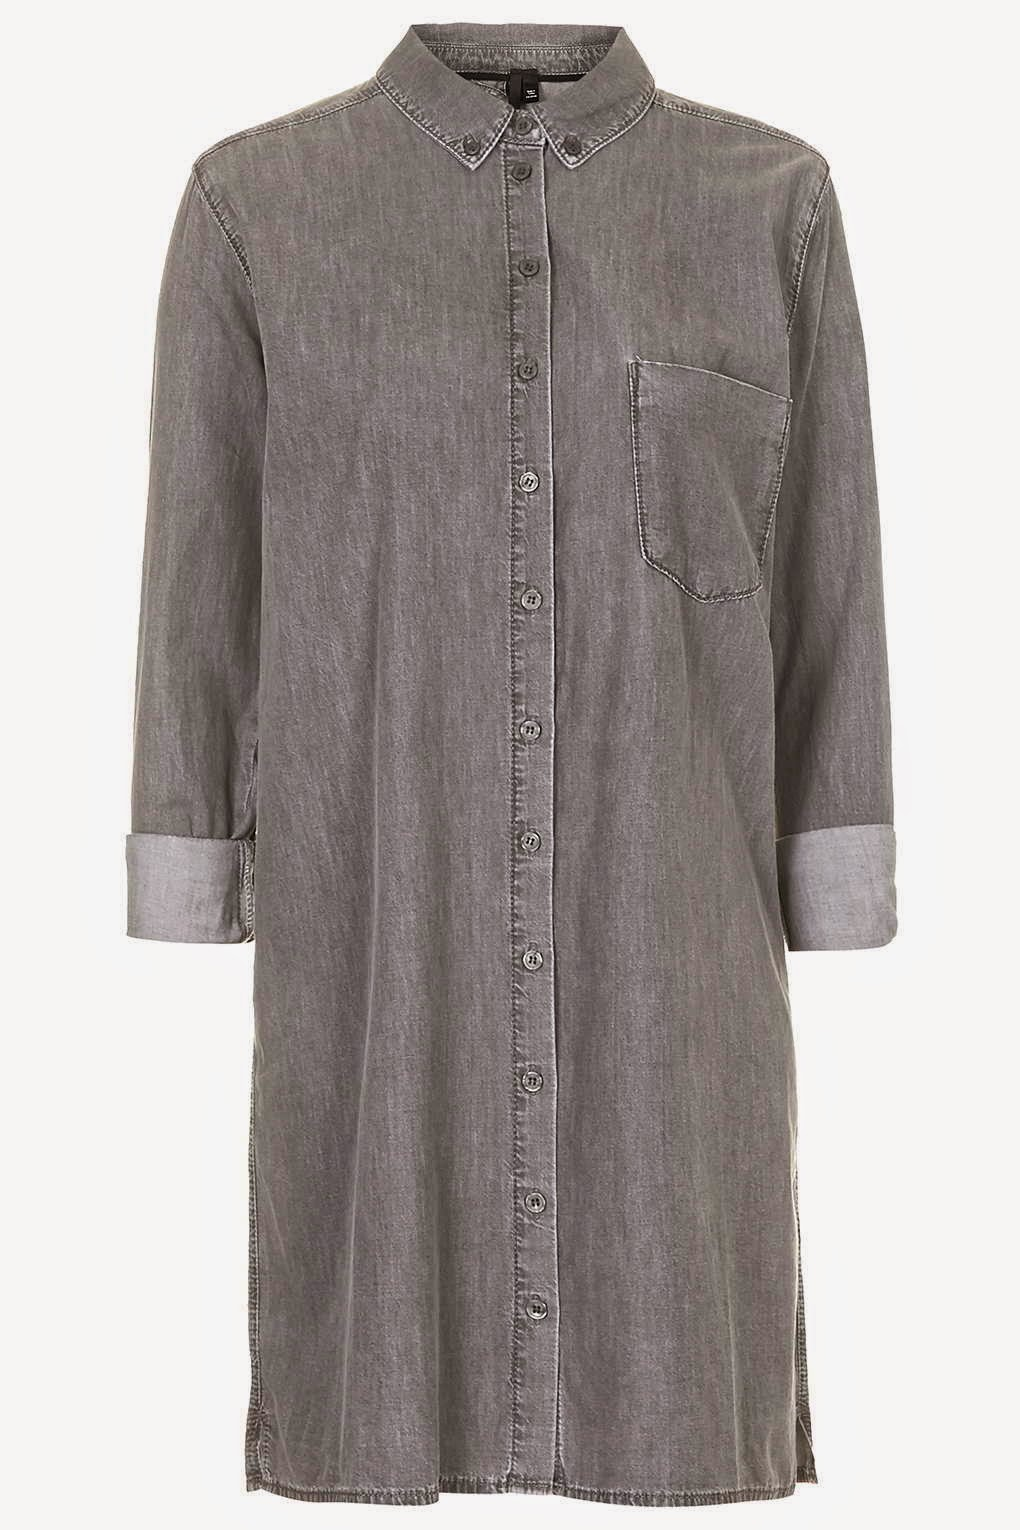 grey denim shirt dress